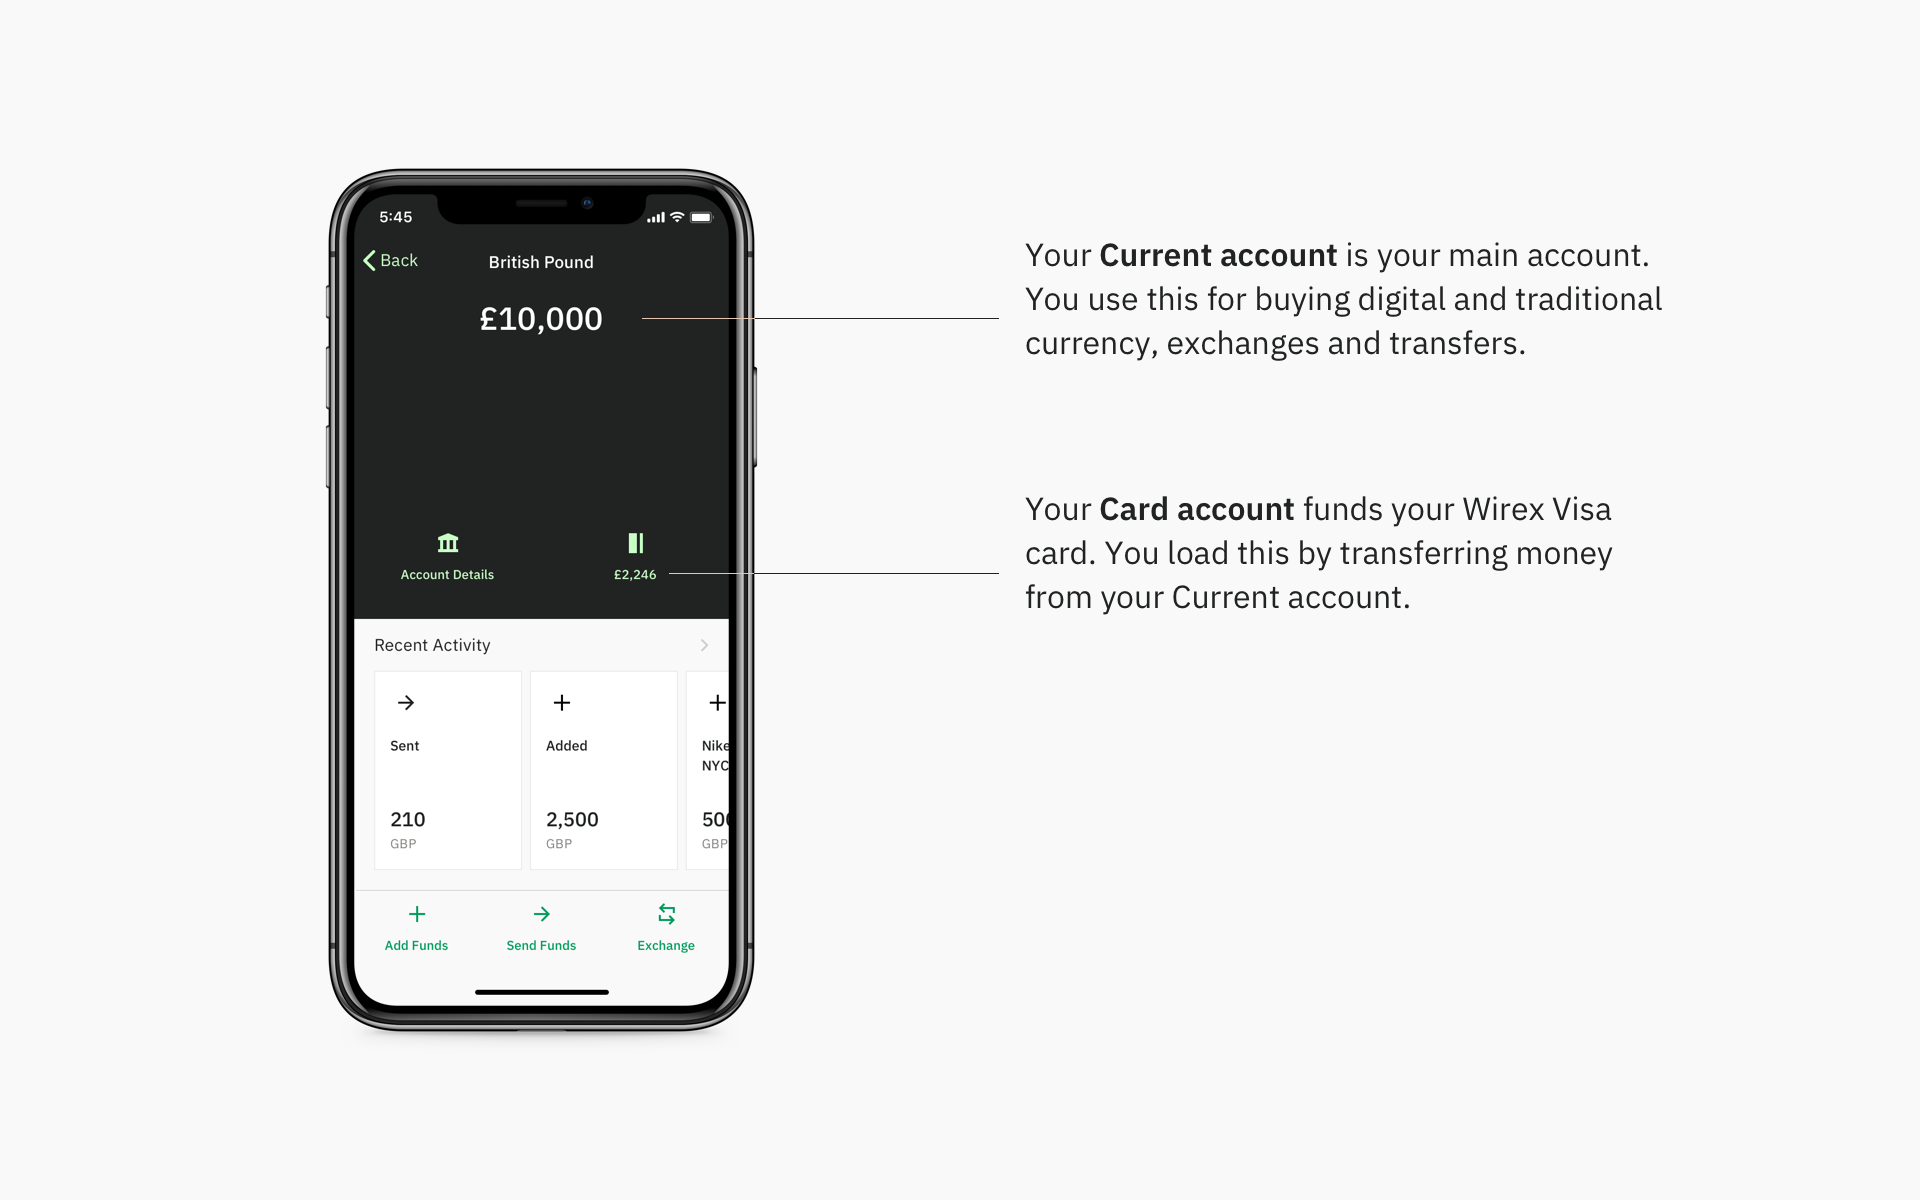 How Can I Top Up My Wirex Account